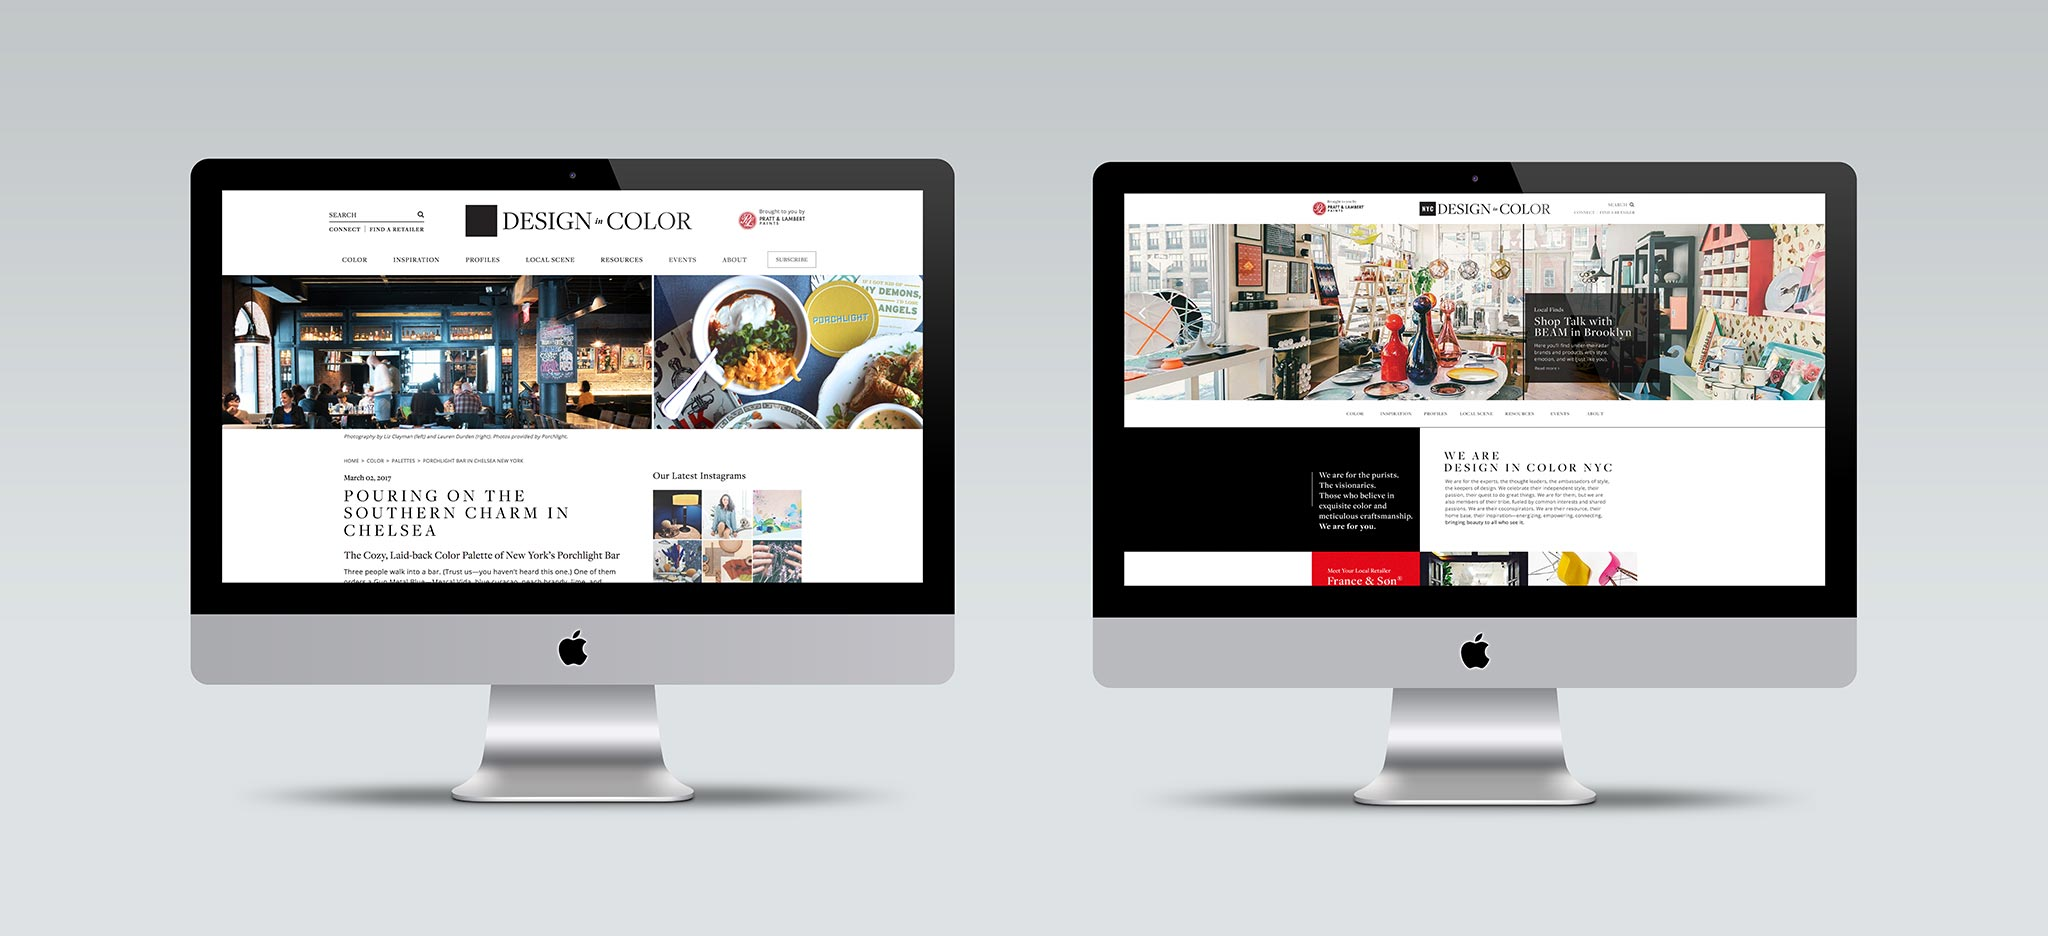 Design in Color NYC and LA Websites on Desktop